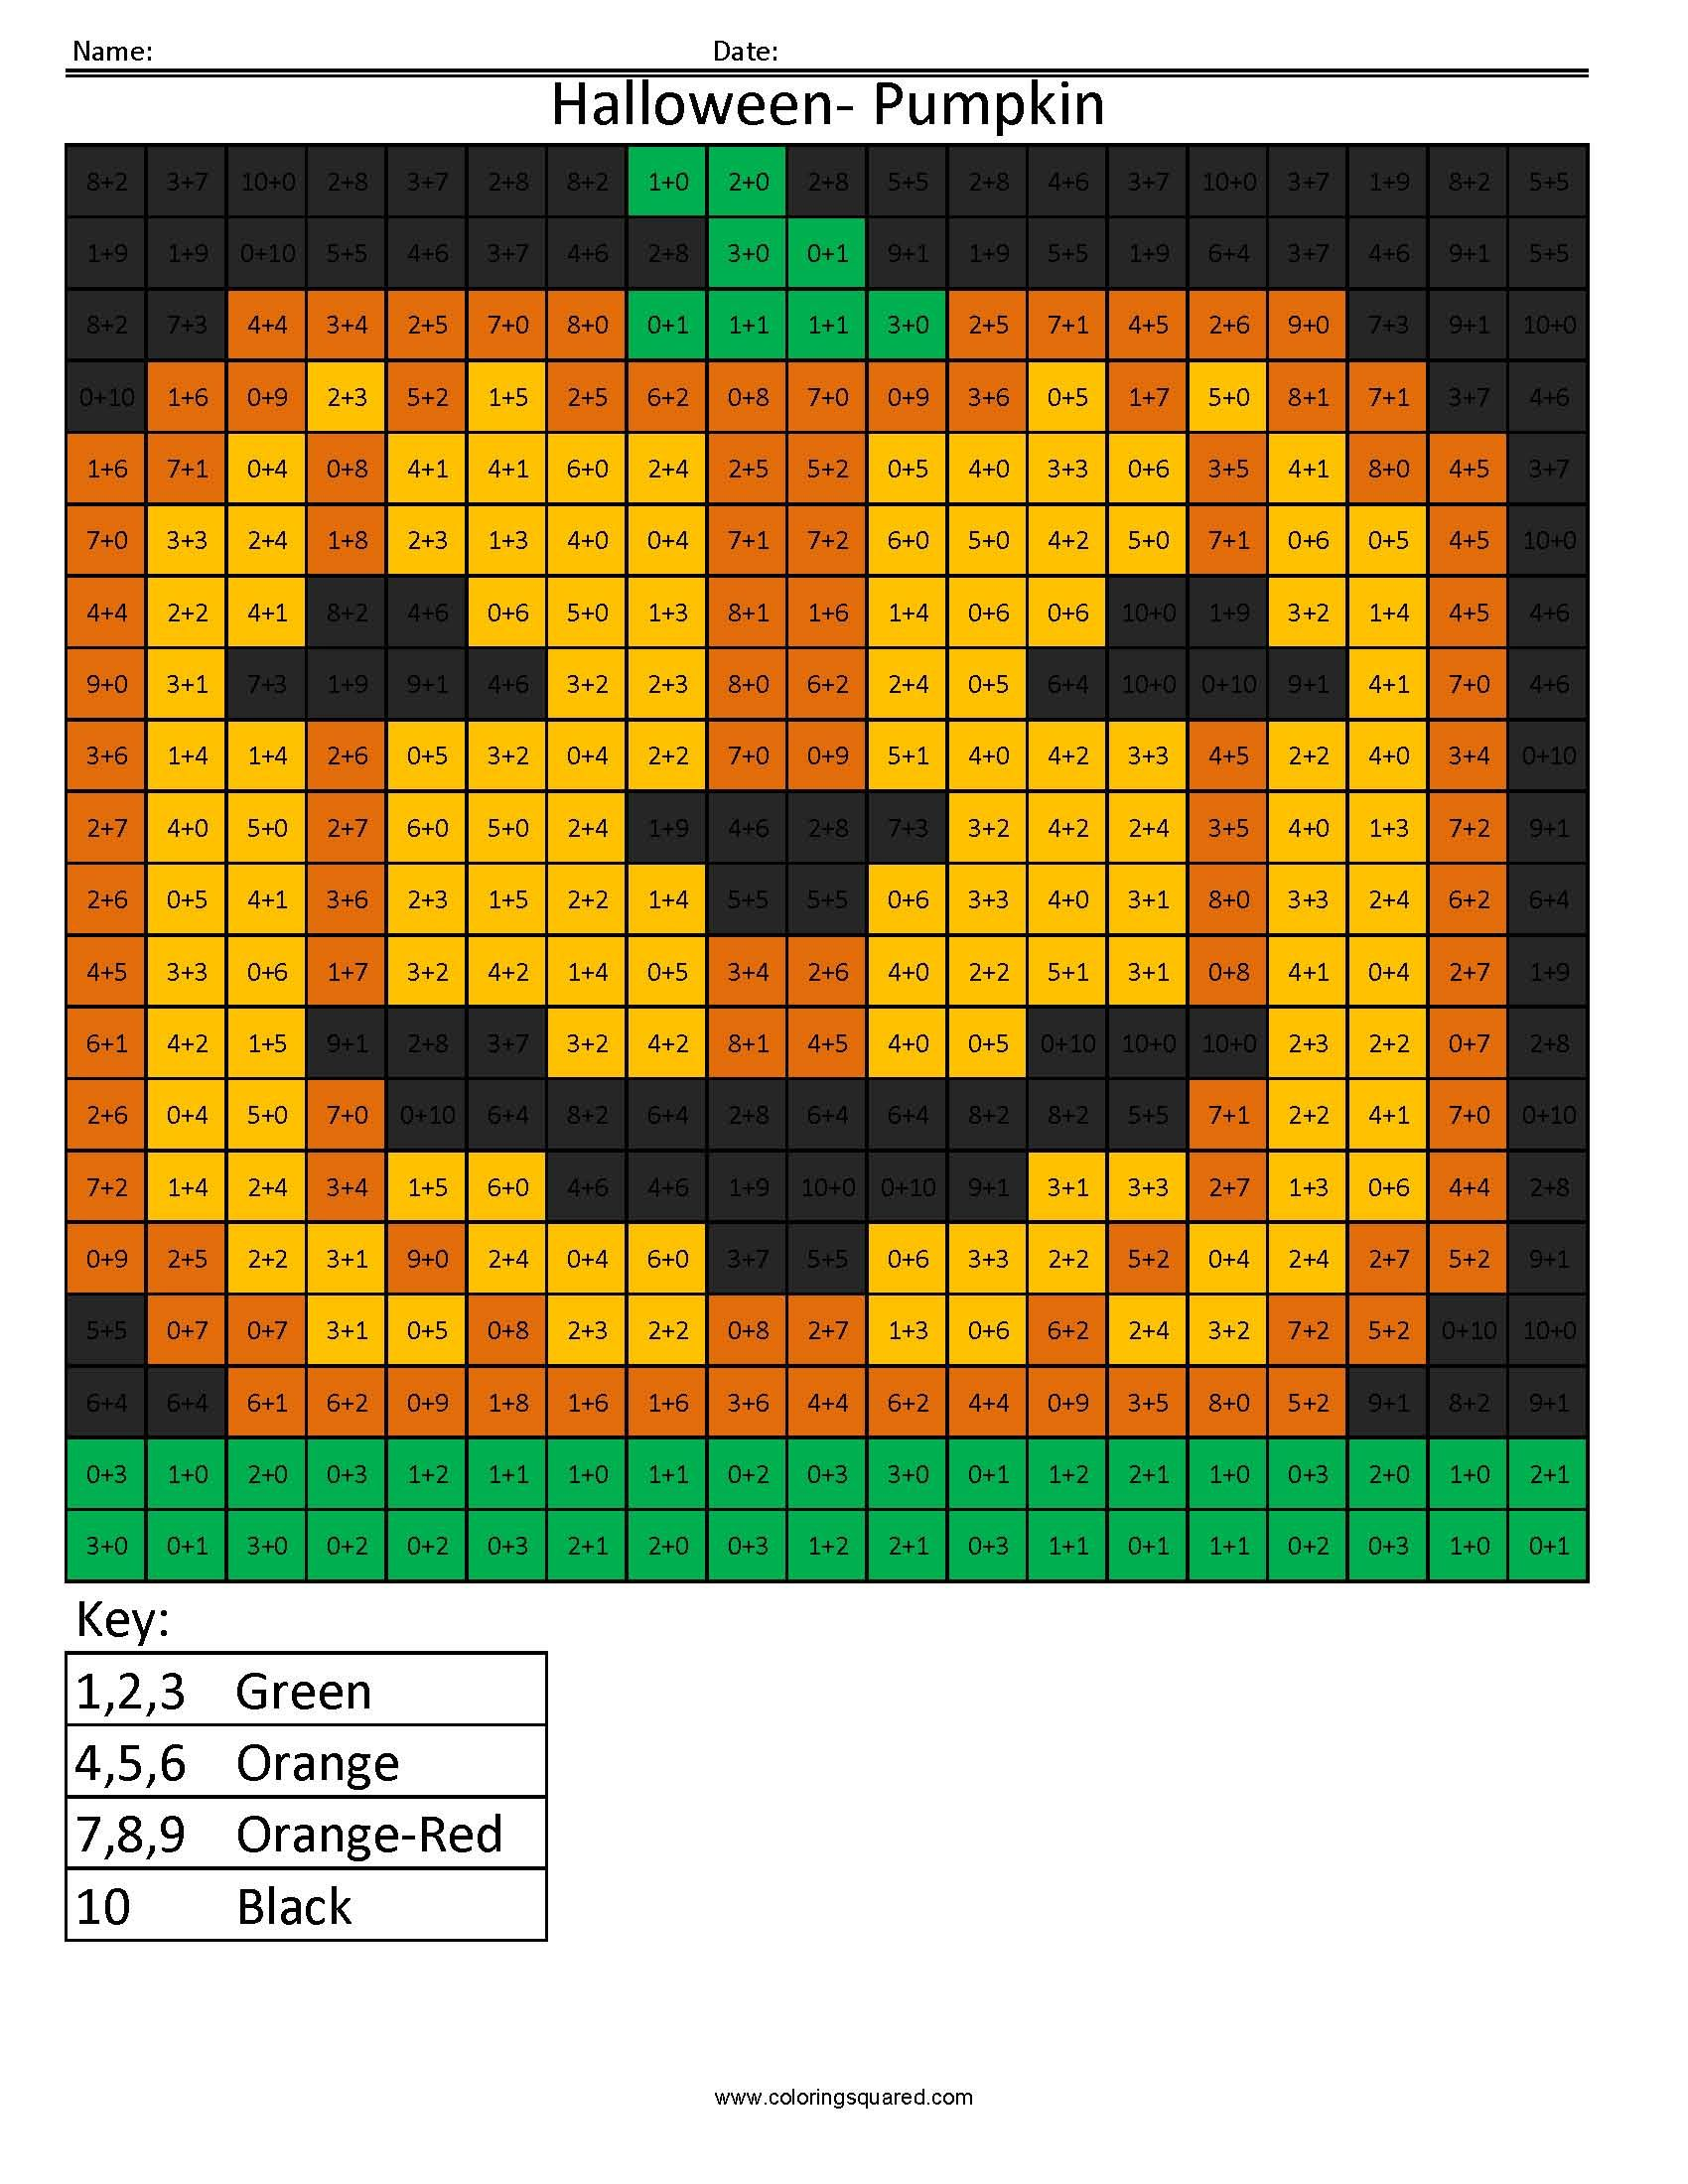 Halloween Pumpkin- Holiday Addition | Coloring Squared | Pinterest ...